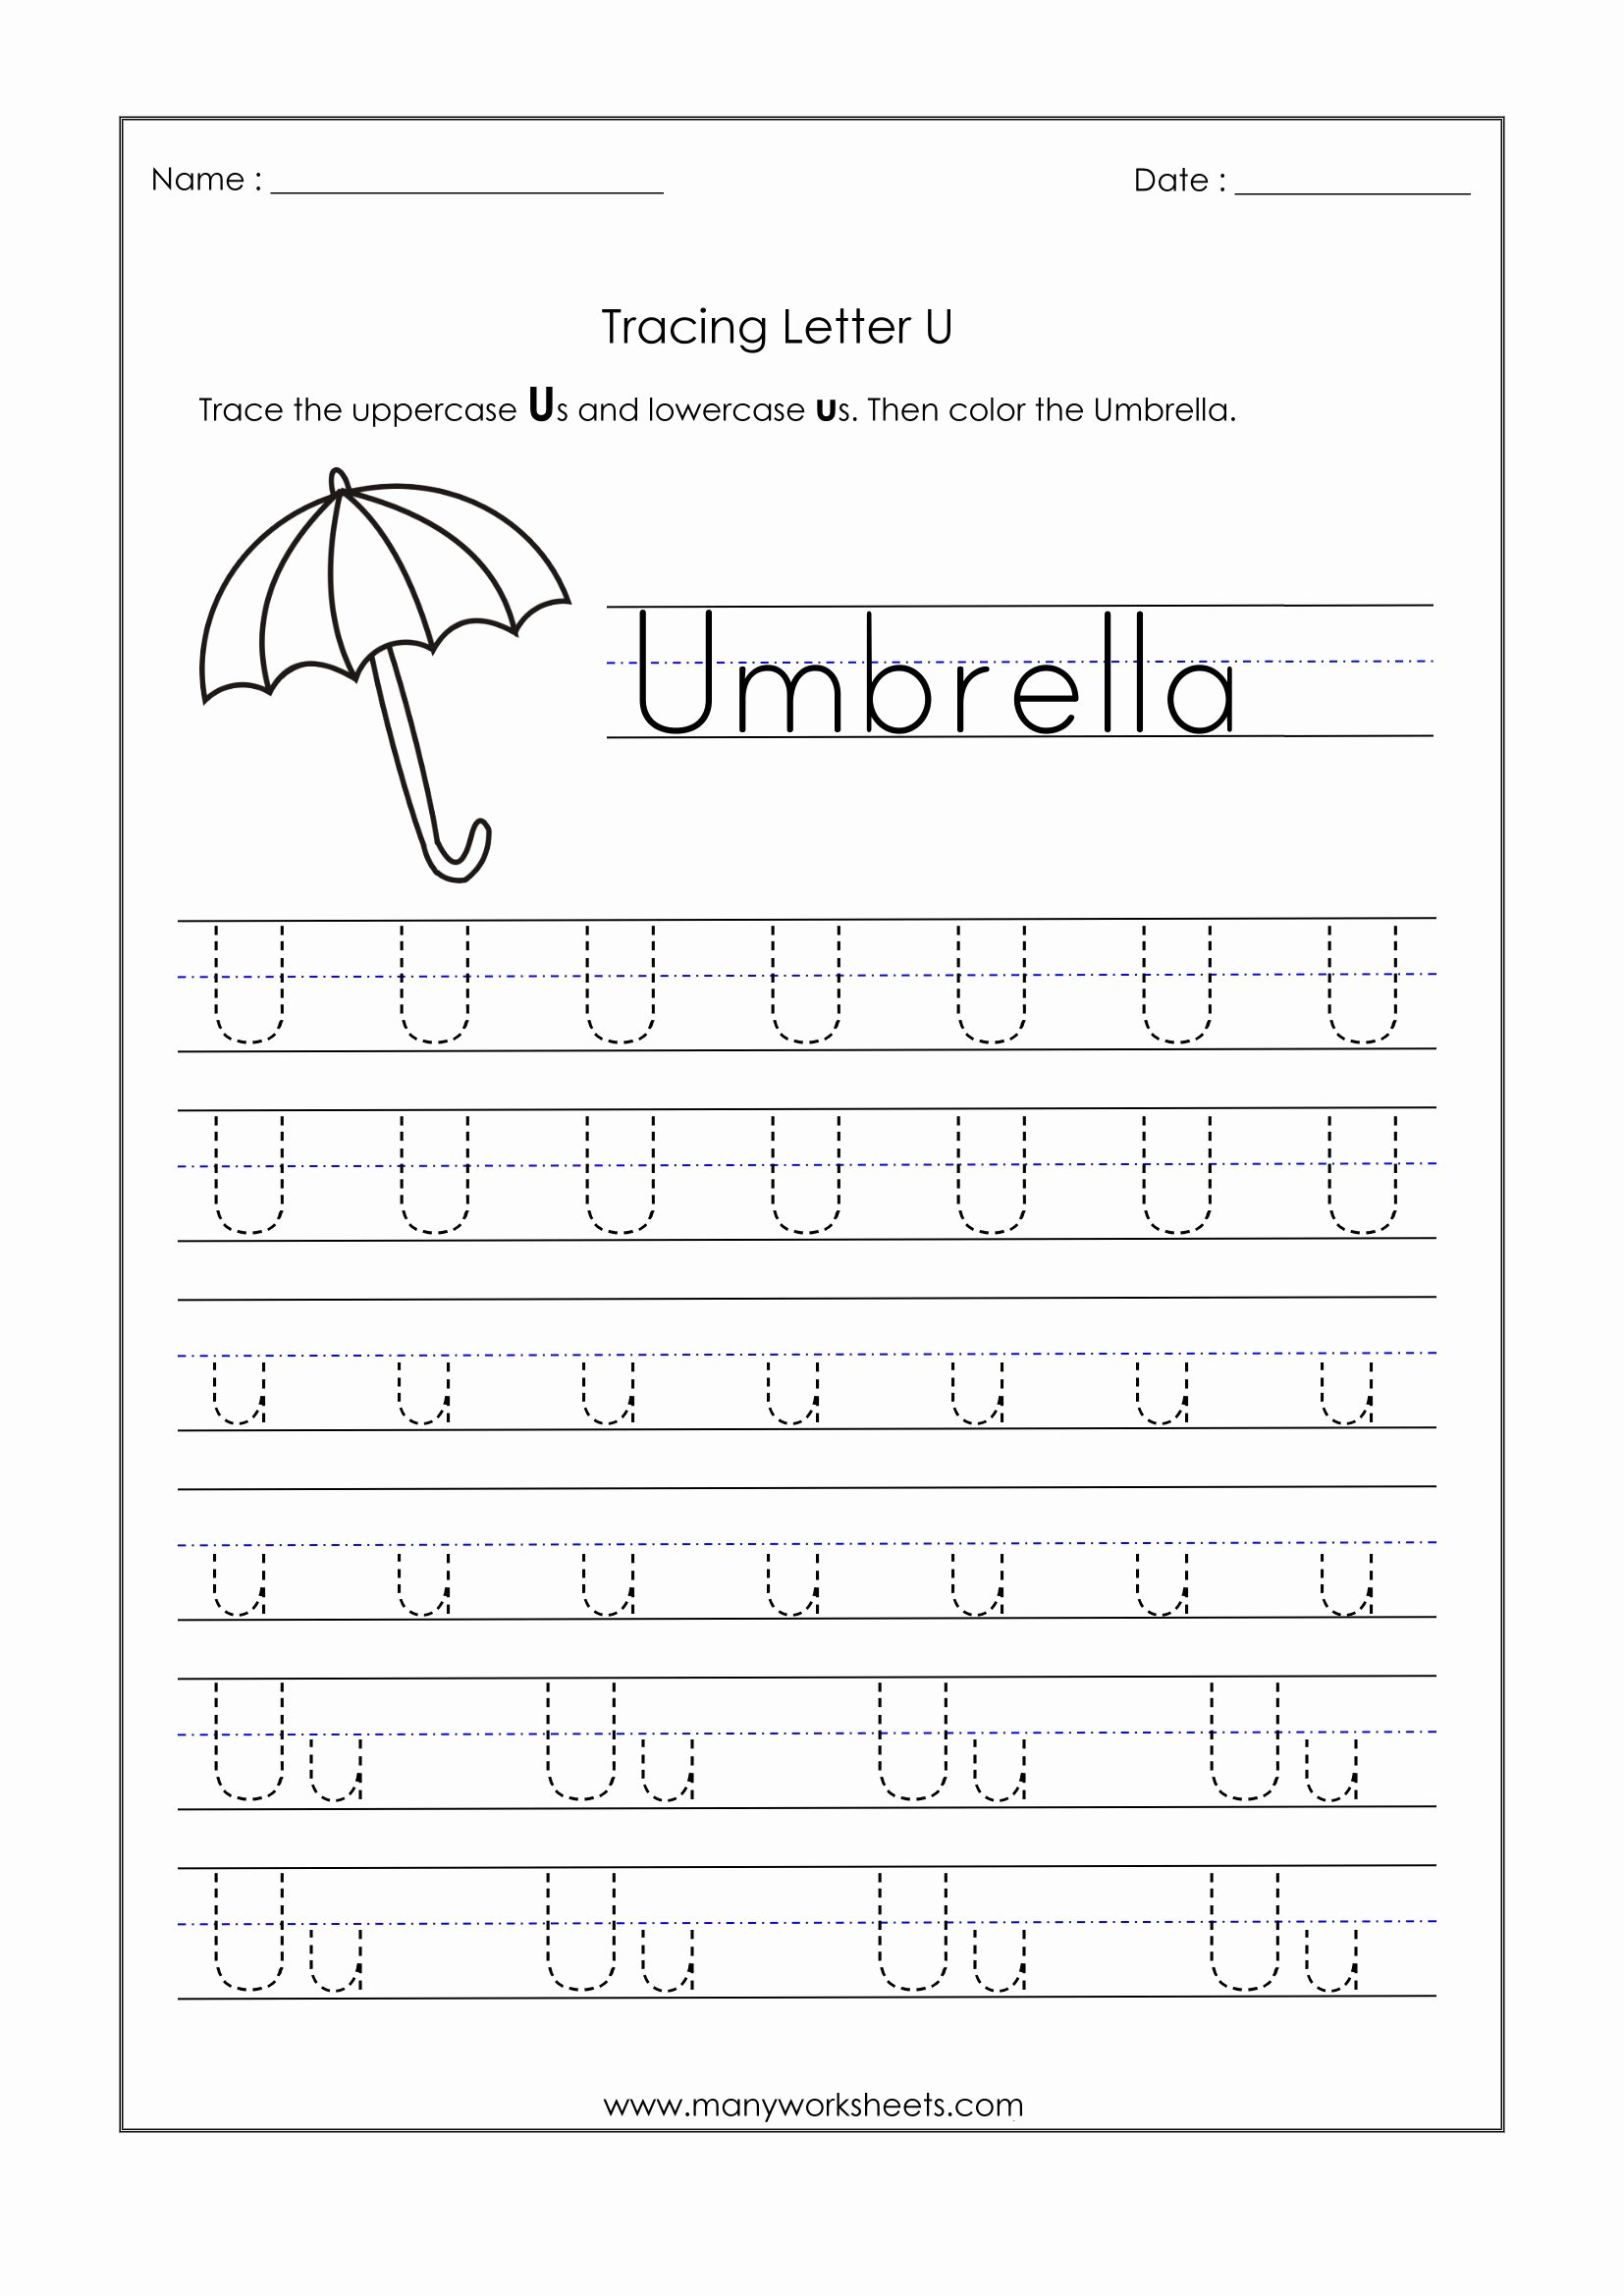 Letter U Worksheets for Preschoolers Unique Letter Worksheets for Kindergarten Trace Dotted Letters Pre